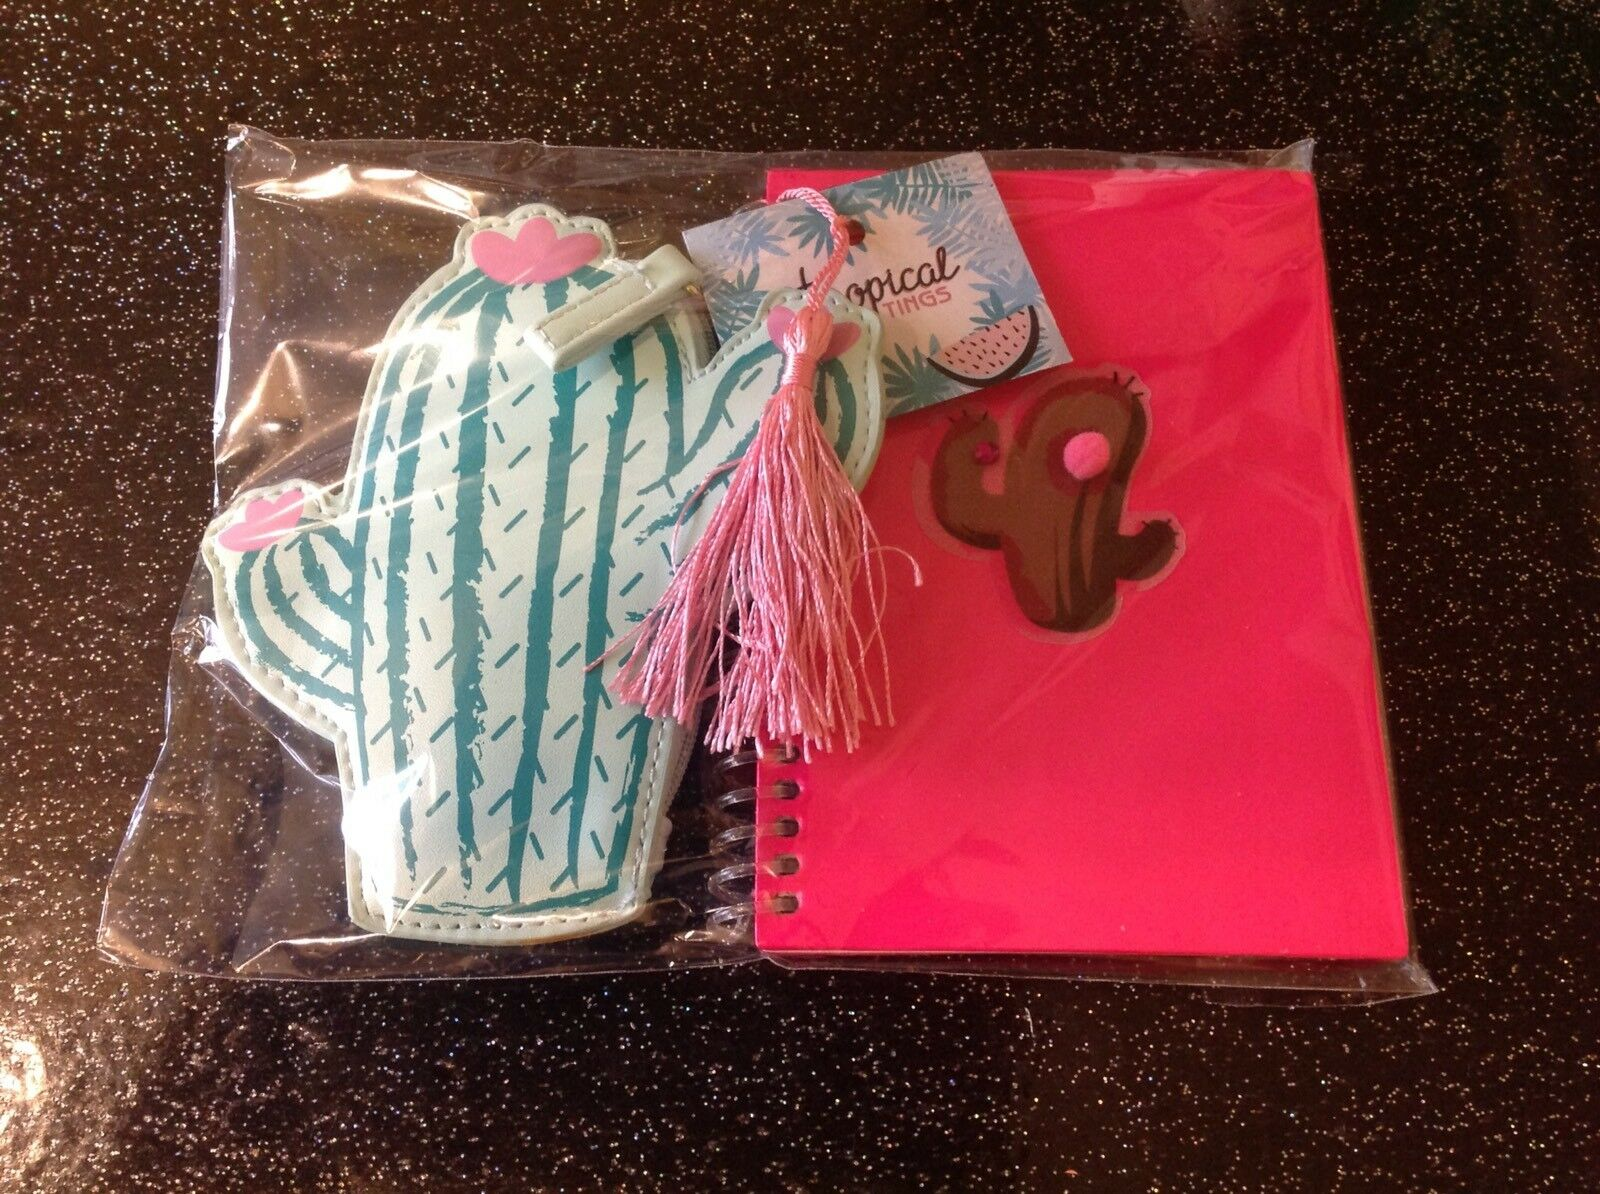 Retro Kitsch Pink Cactus A6 Wiro Notebook +Faux Leather Purse 2 Piece Gift Set